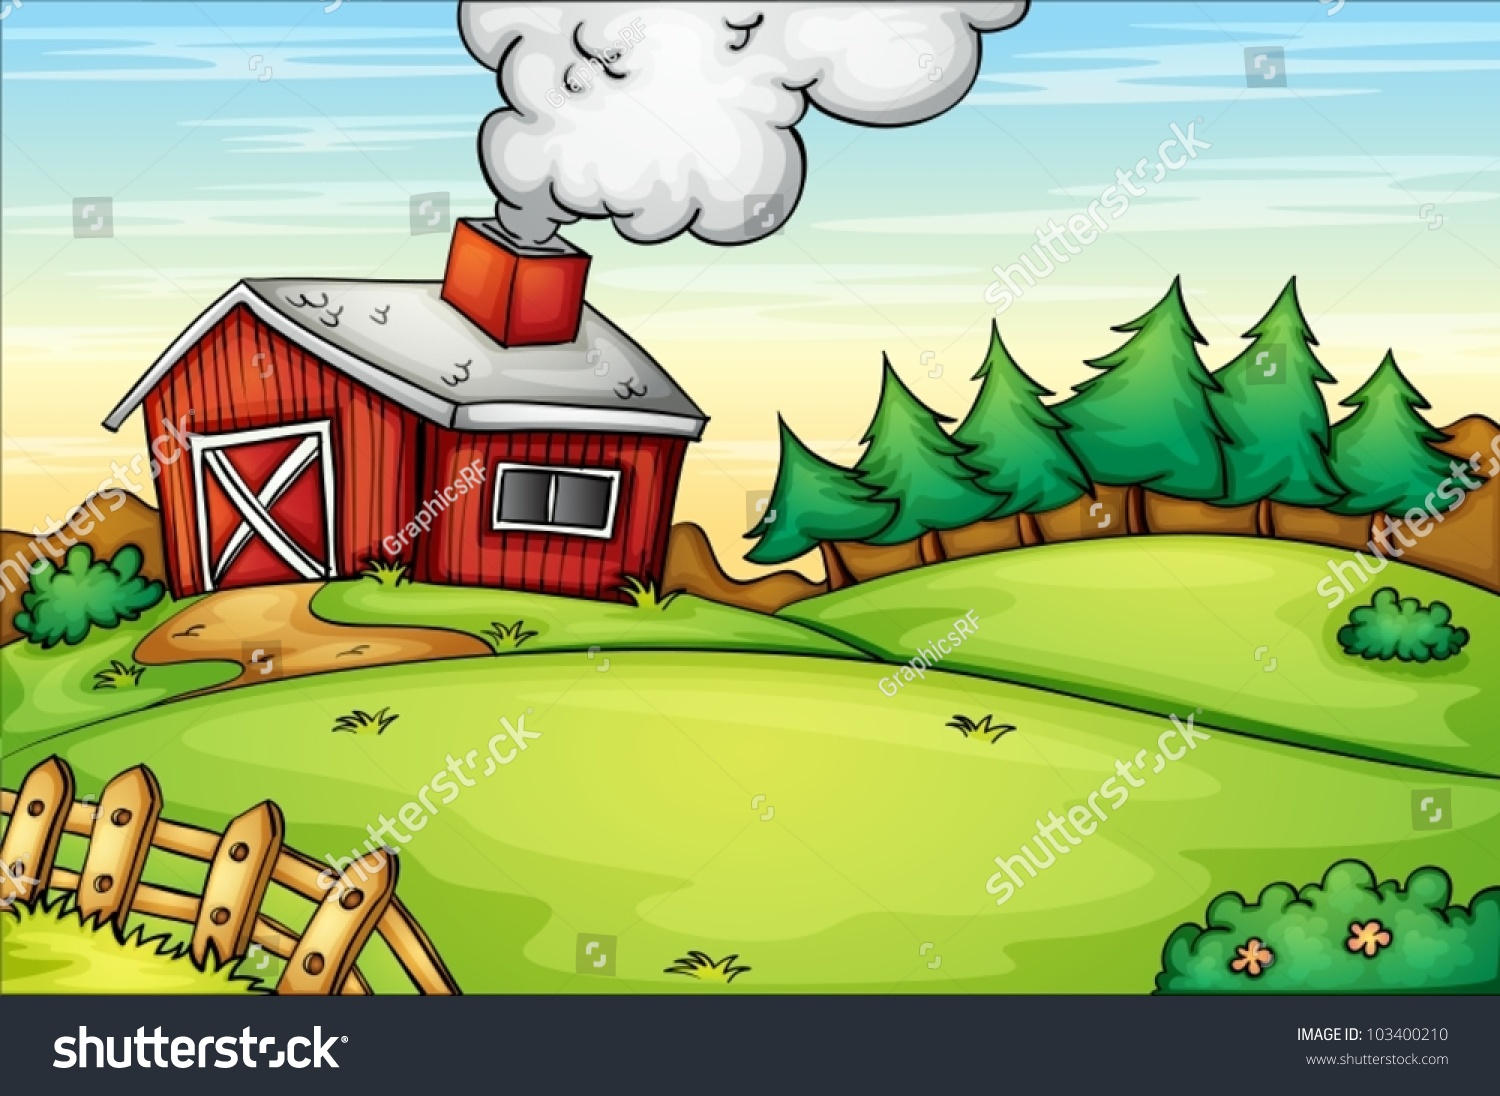 Illustration Of An Empty Farm